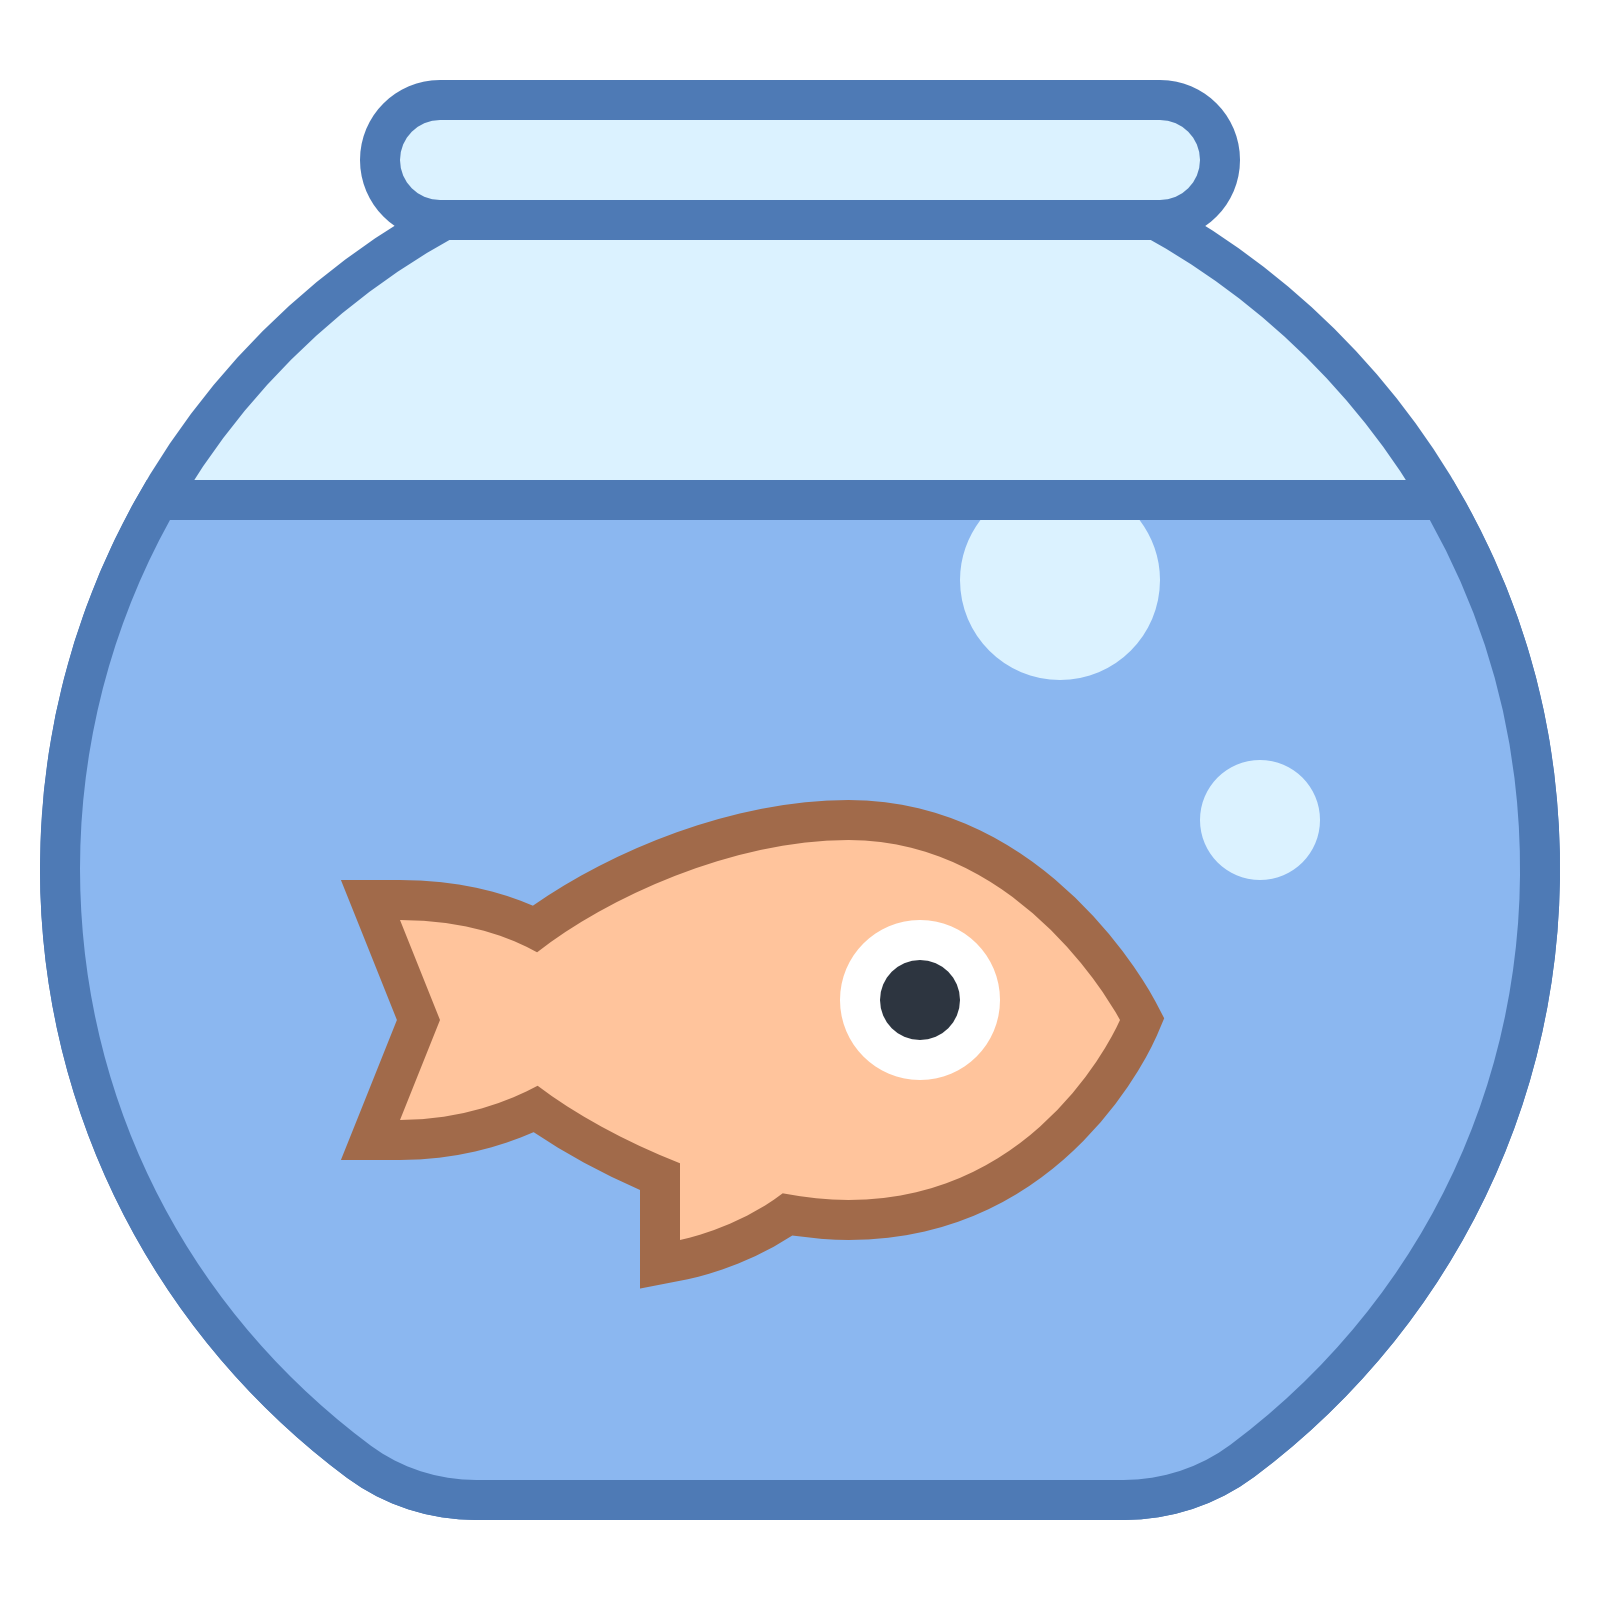 Fish in a tank clipart banner transparent download 28+ Collection of Fish Tank Clipart Png | High quality, free ... banner transparent download